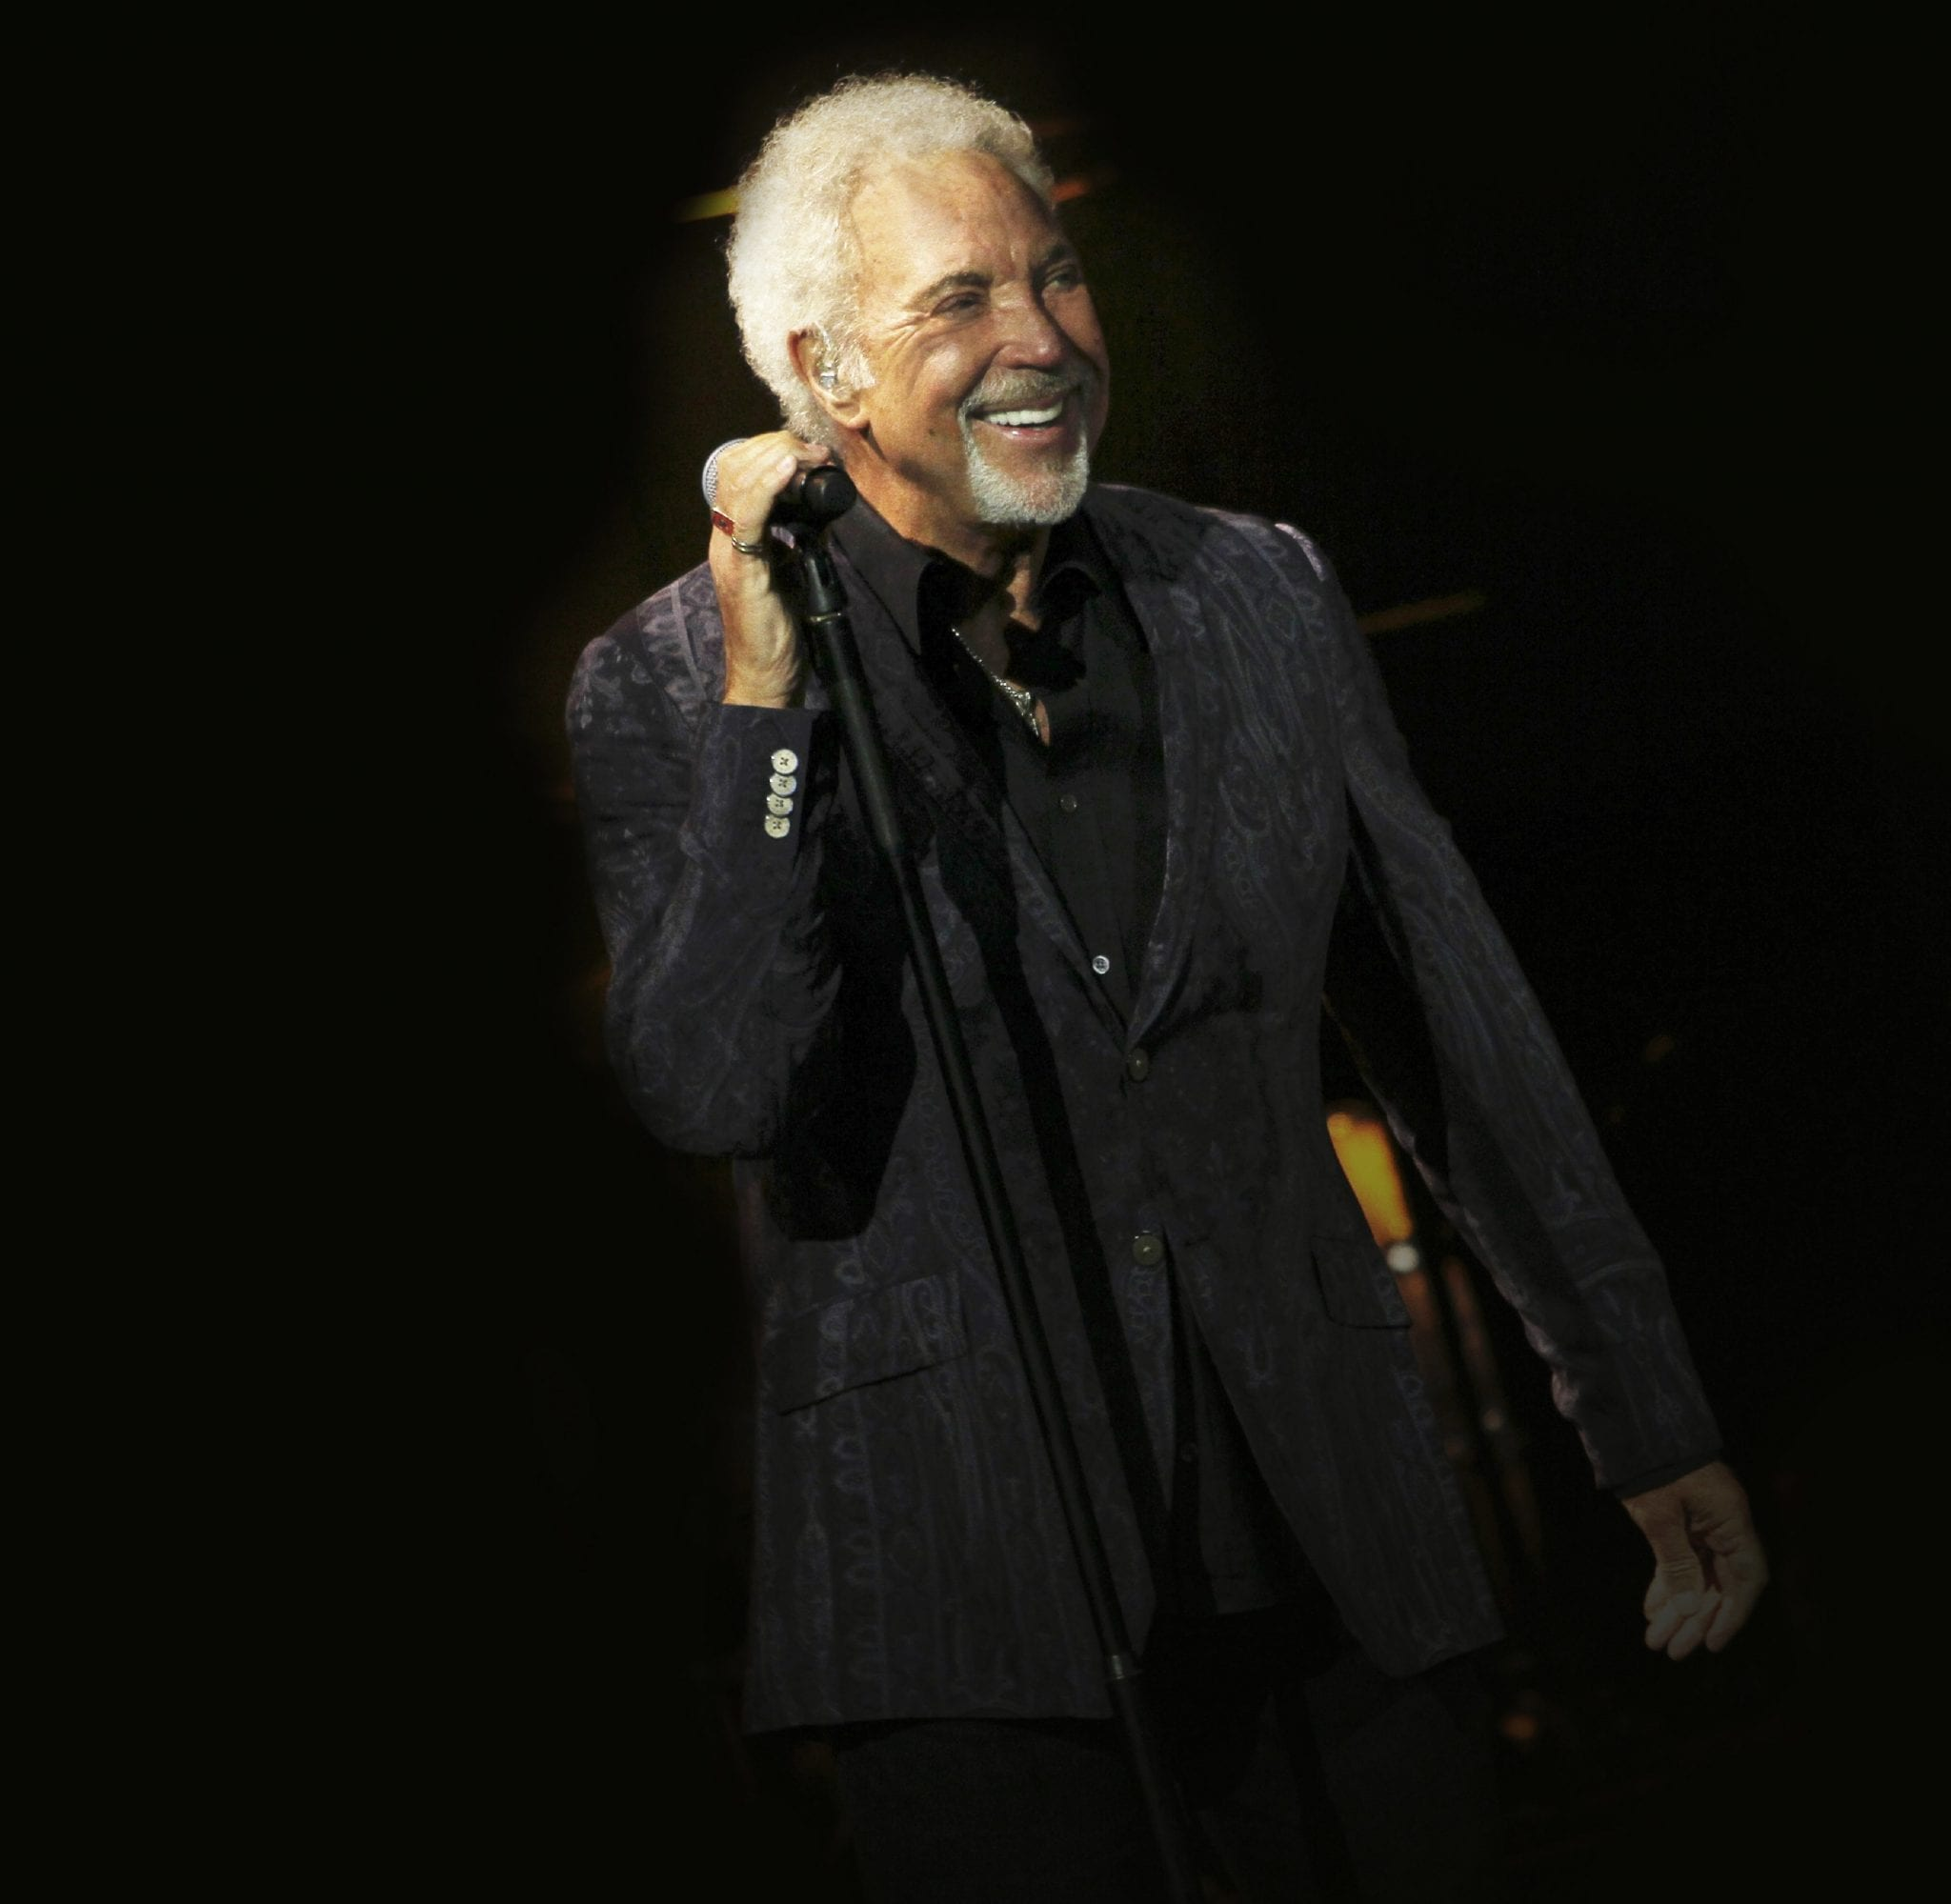 Tom Jones says 'get ready for the expected and the unexpected this summer'